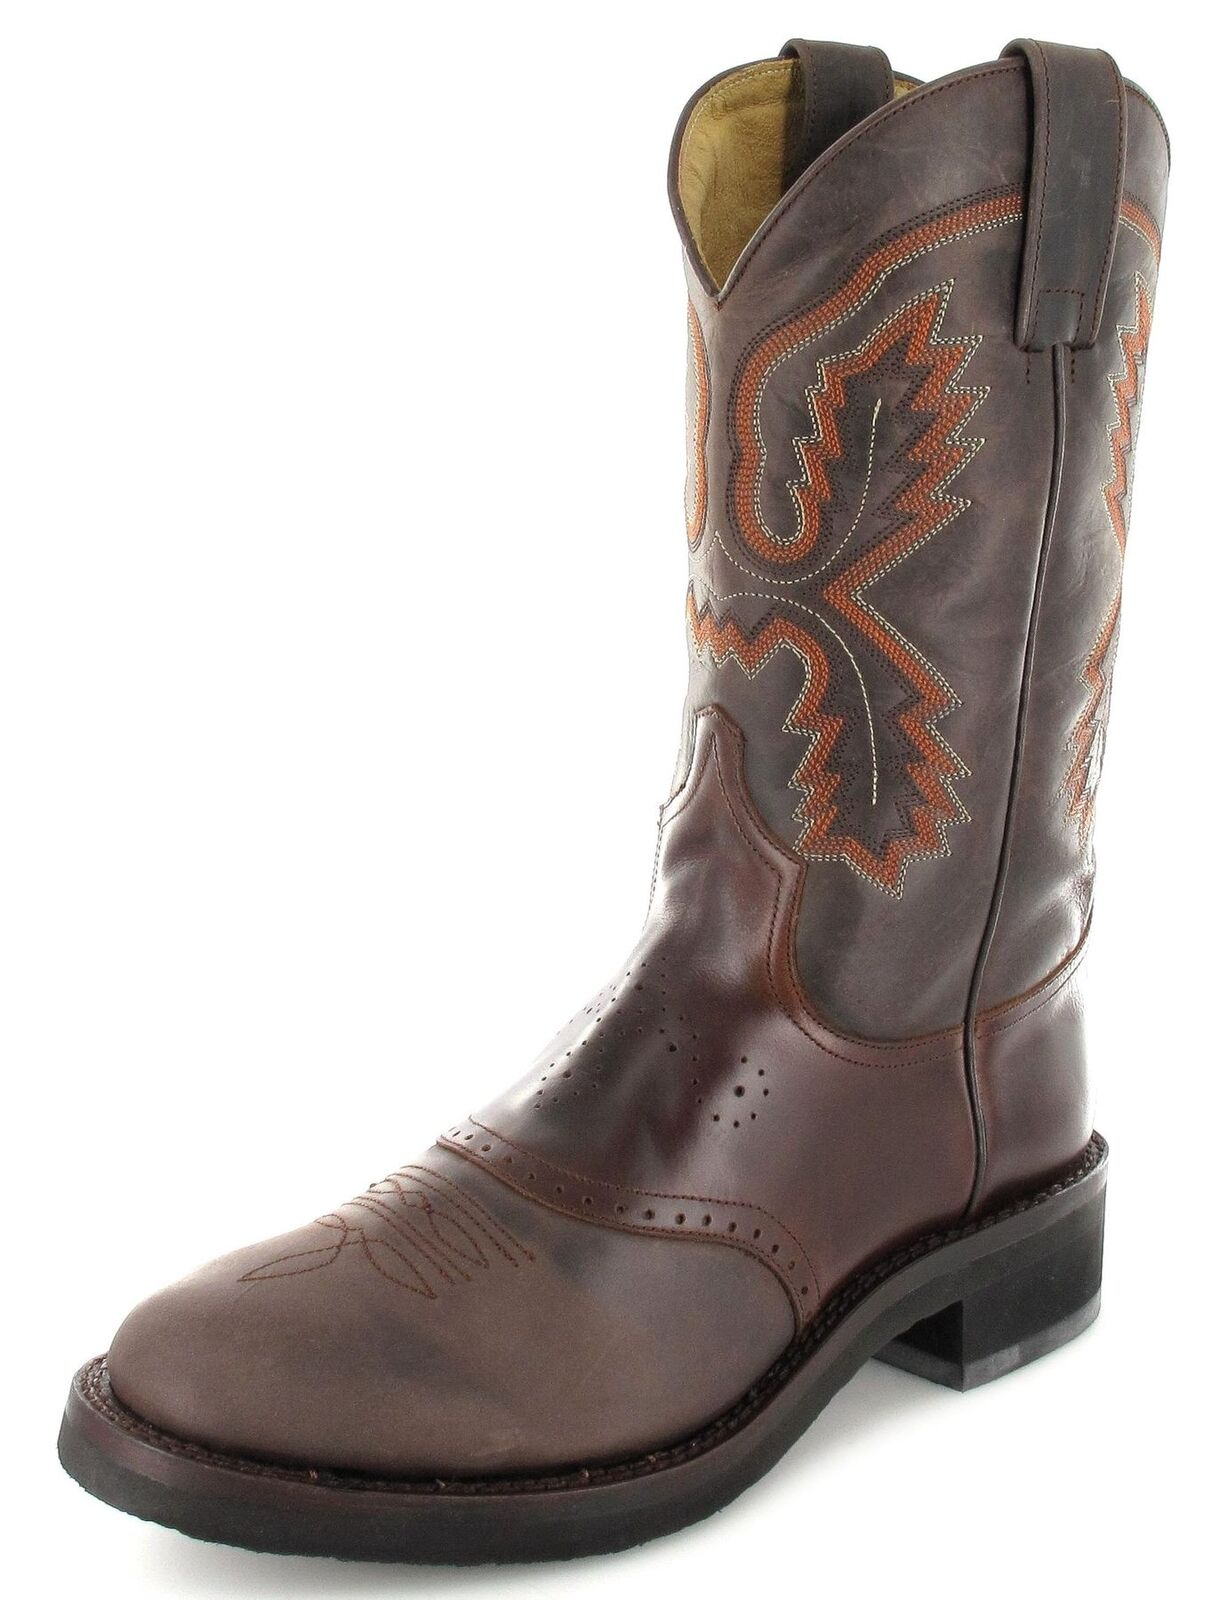 Sendra Stiefel 5357 Chocolate Mens Western Riding Stiefel braun Leather Stiefel